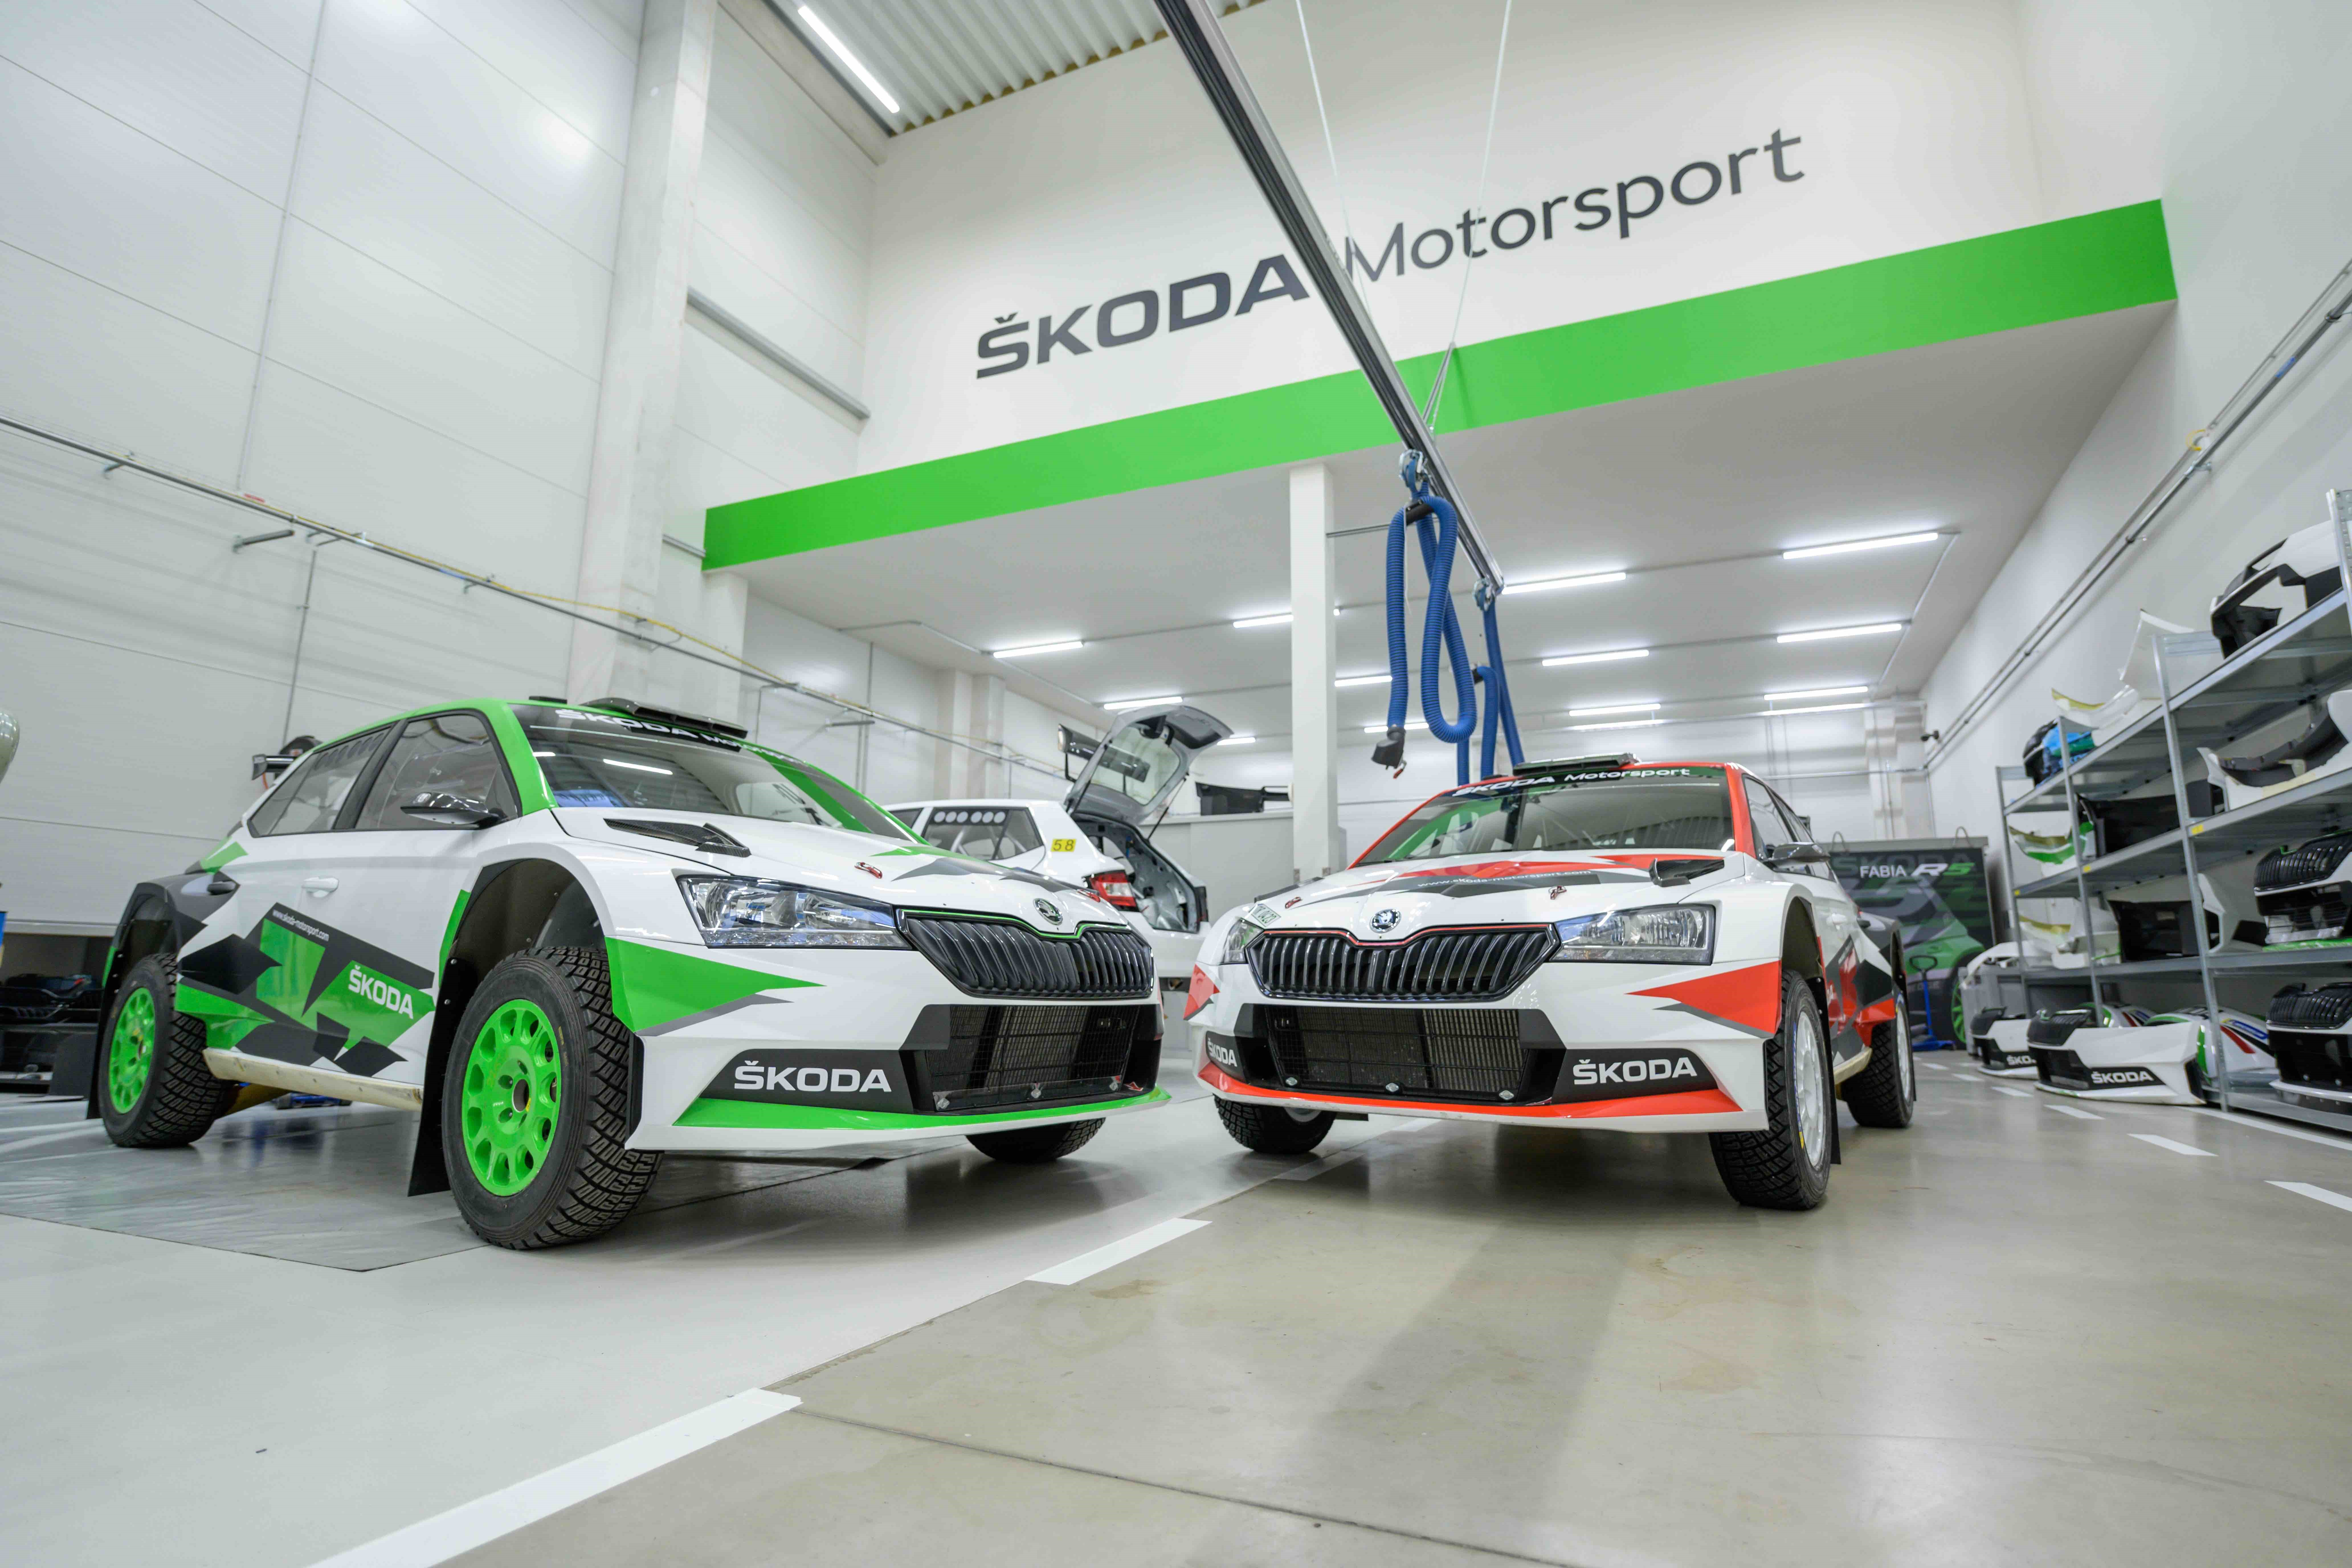 """SKODA features own """"Ice Race of Champions"""" at Austrian winter-sport resort in Zell am See-Kaprun - Image 1"""